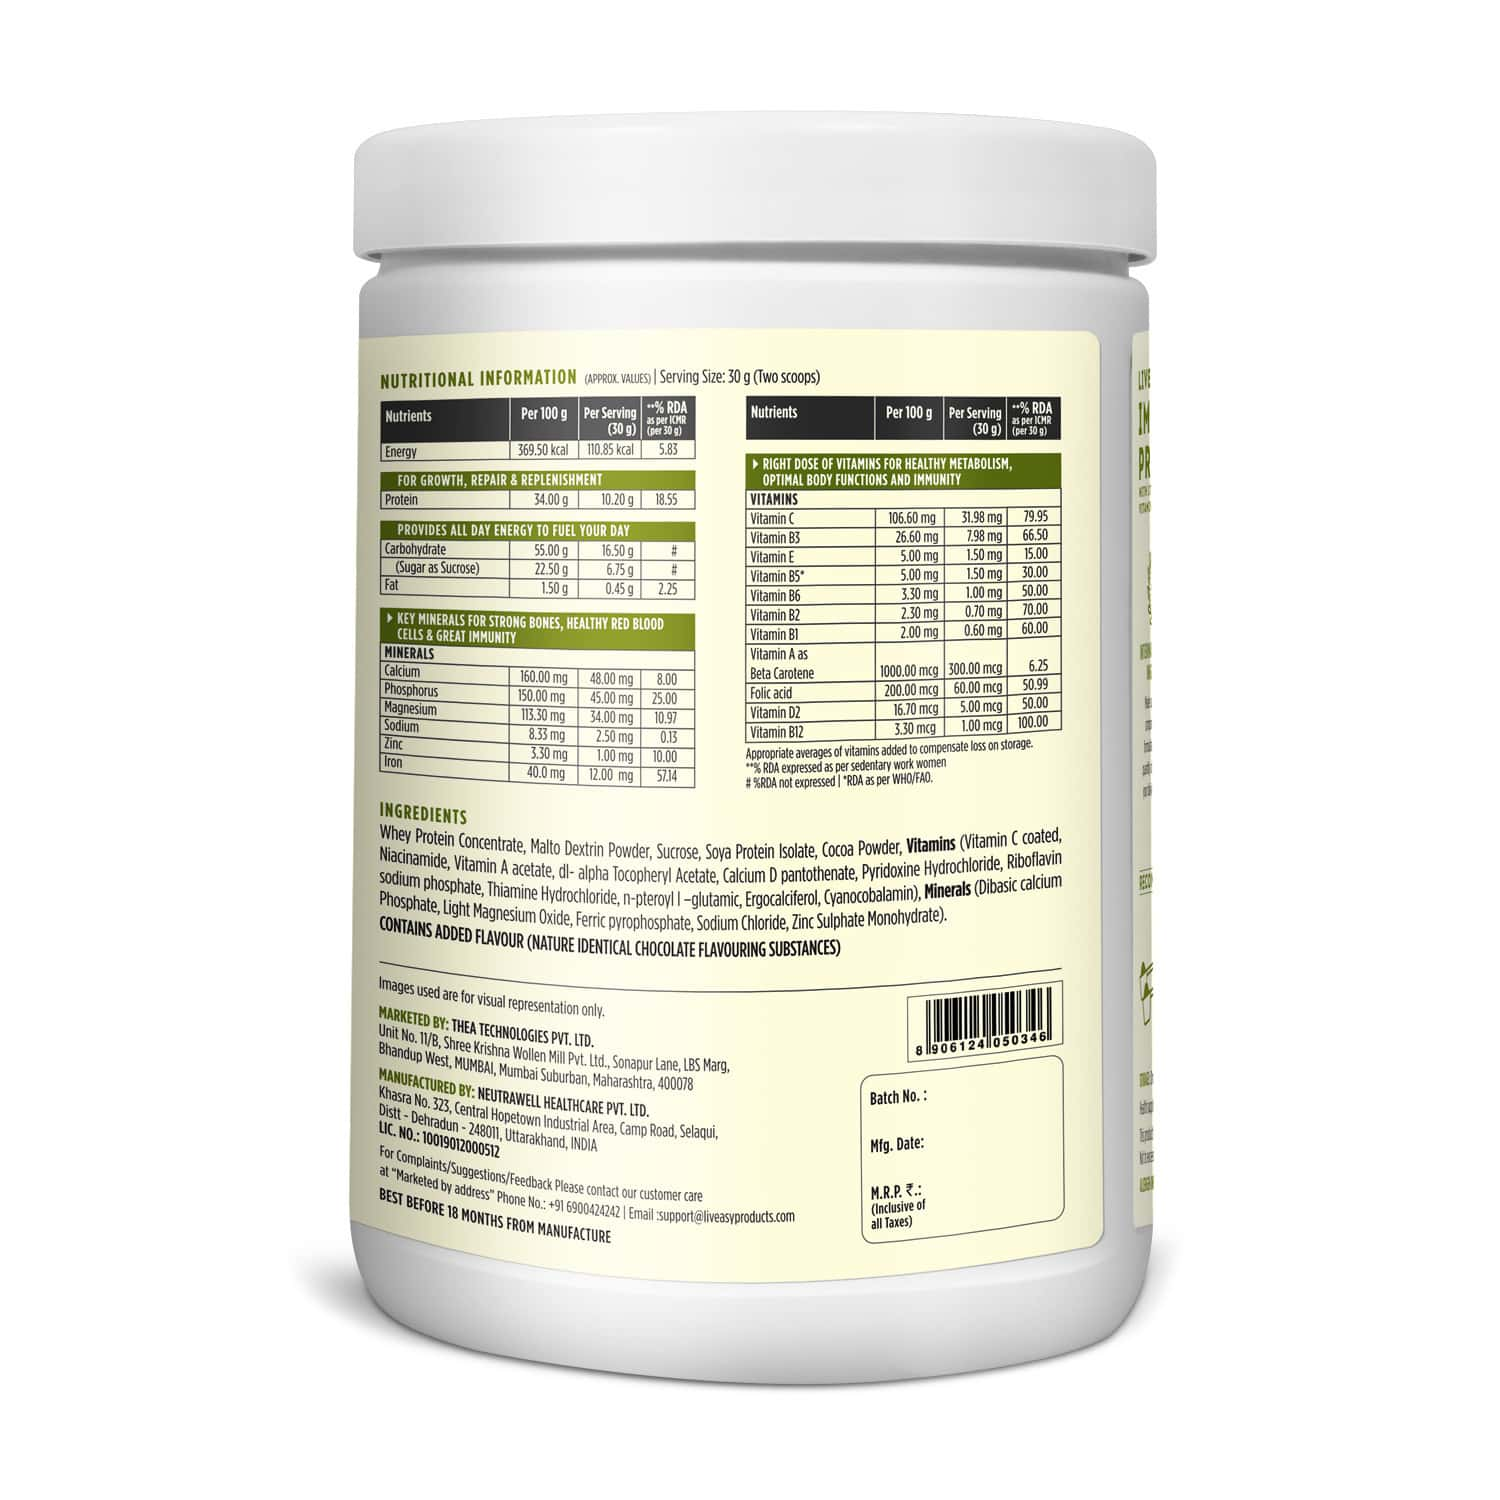 Liveasy Wellness Immuno Protein - Adult Protein Drink With Vitamins & Minerals - Provides Energy & Vitality - Jar Of 500 Gram